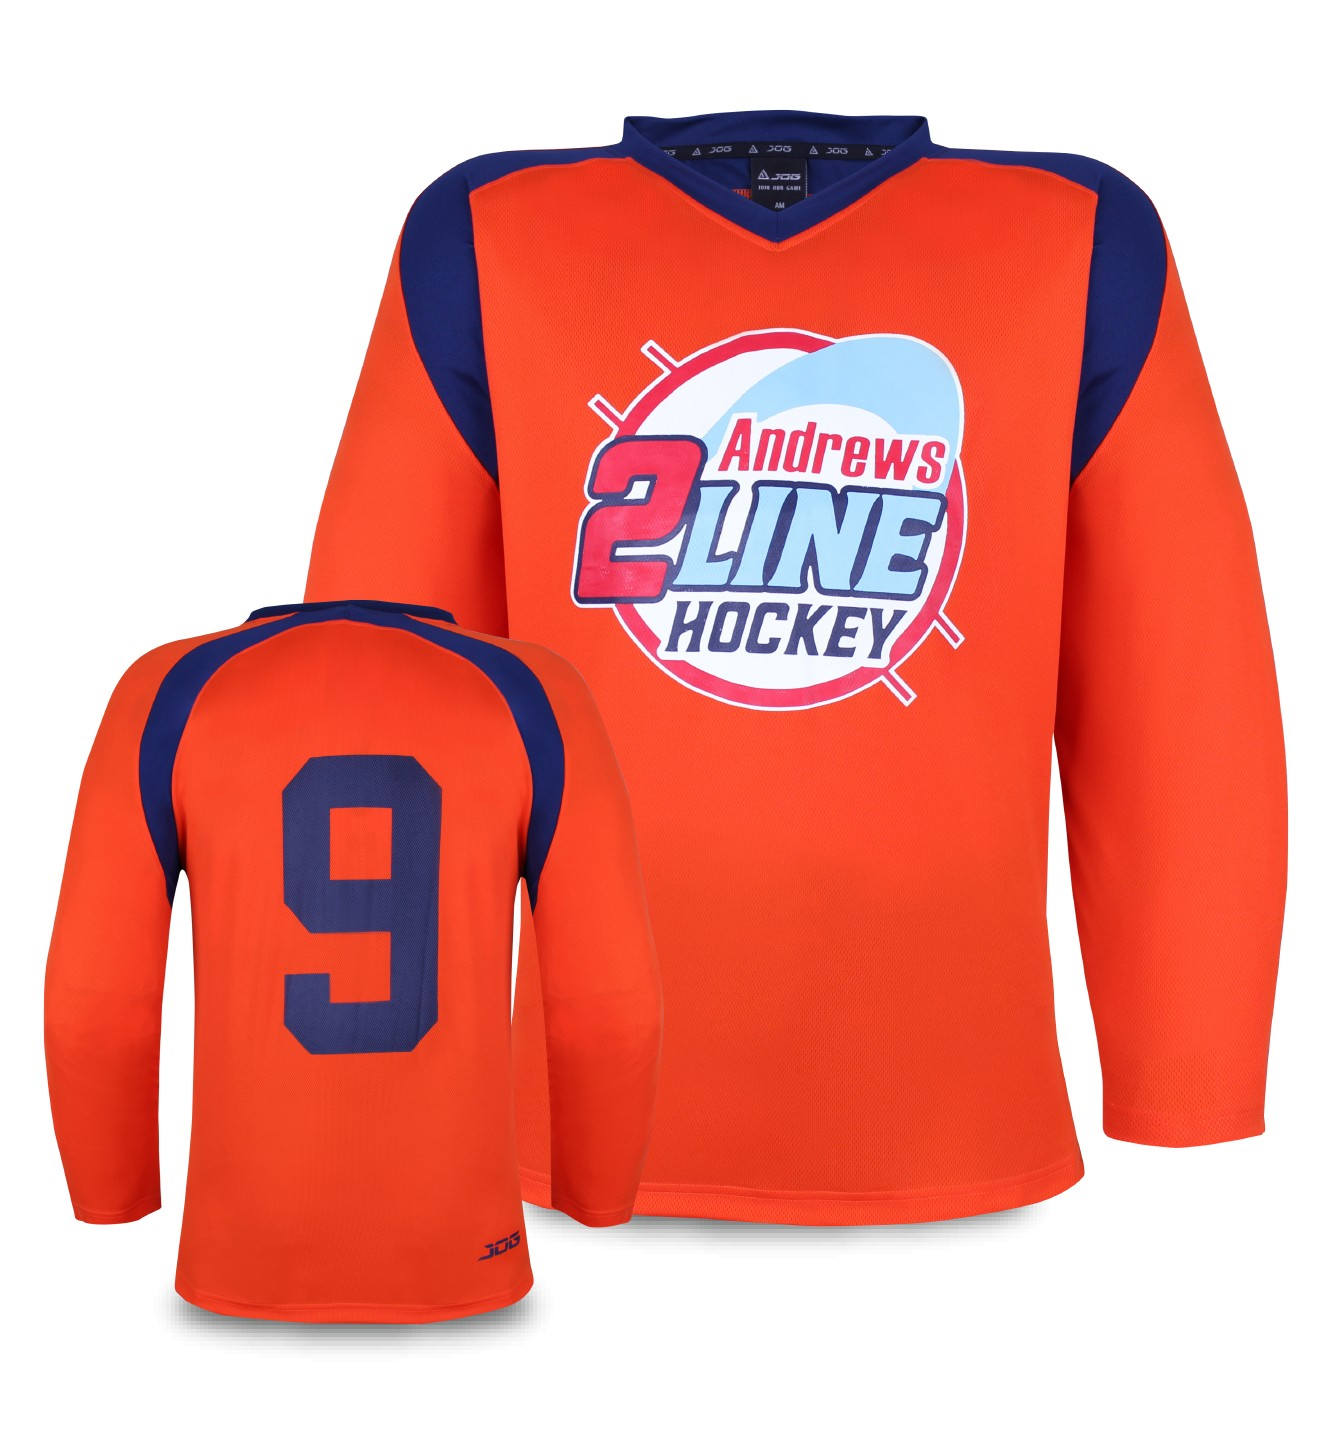 Custom hockey practice jersey for Andrews Hockey.